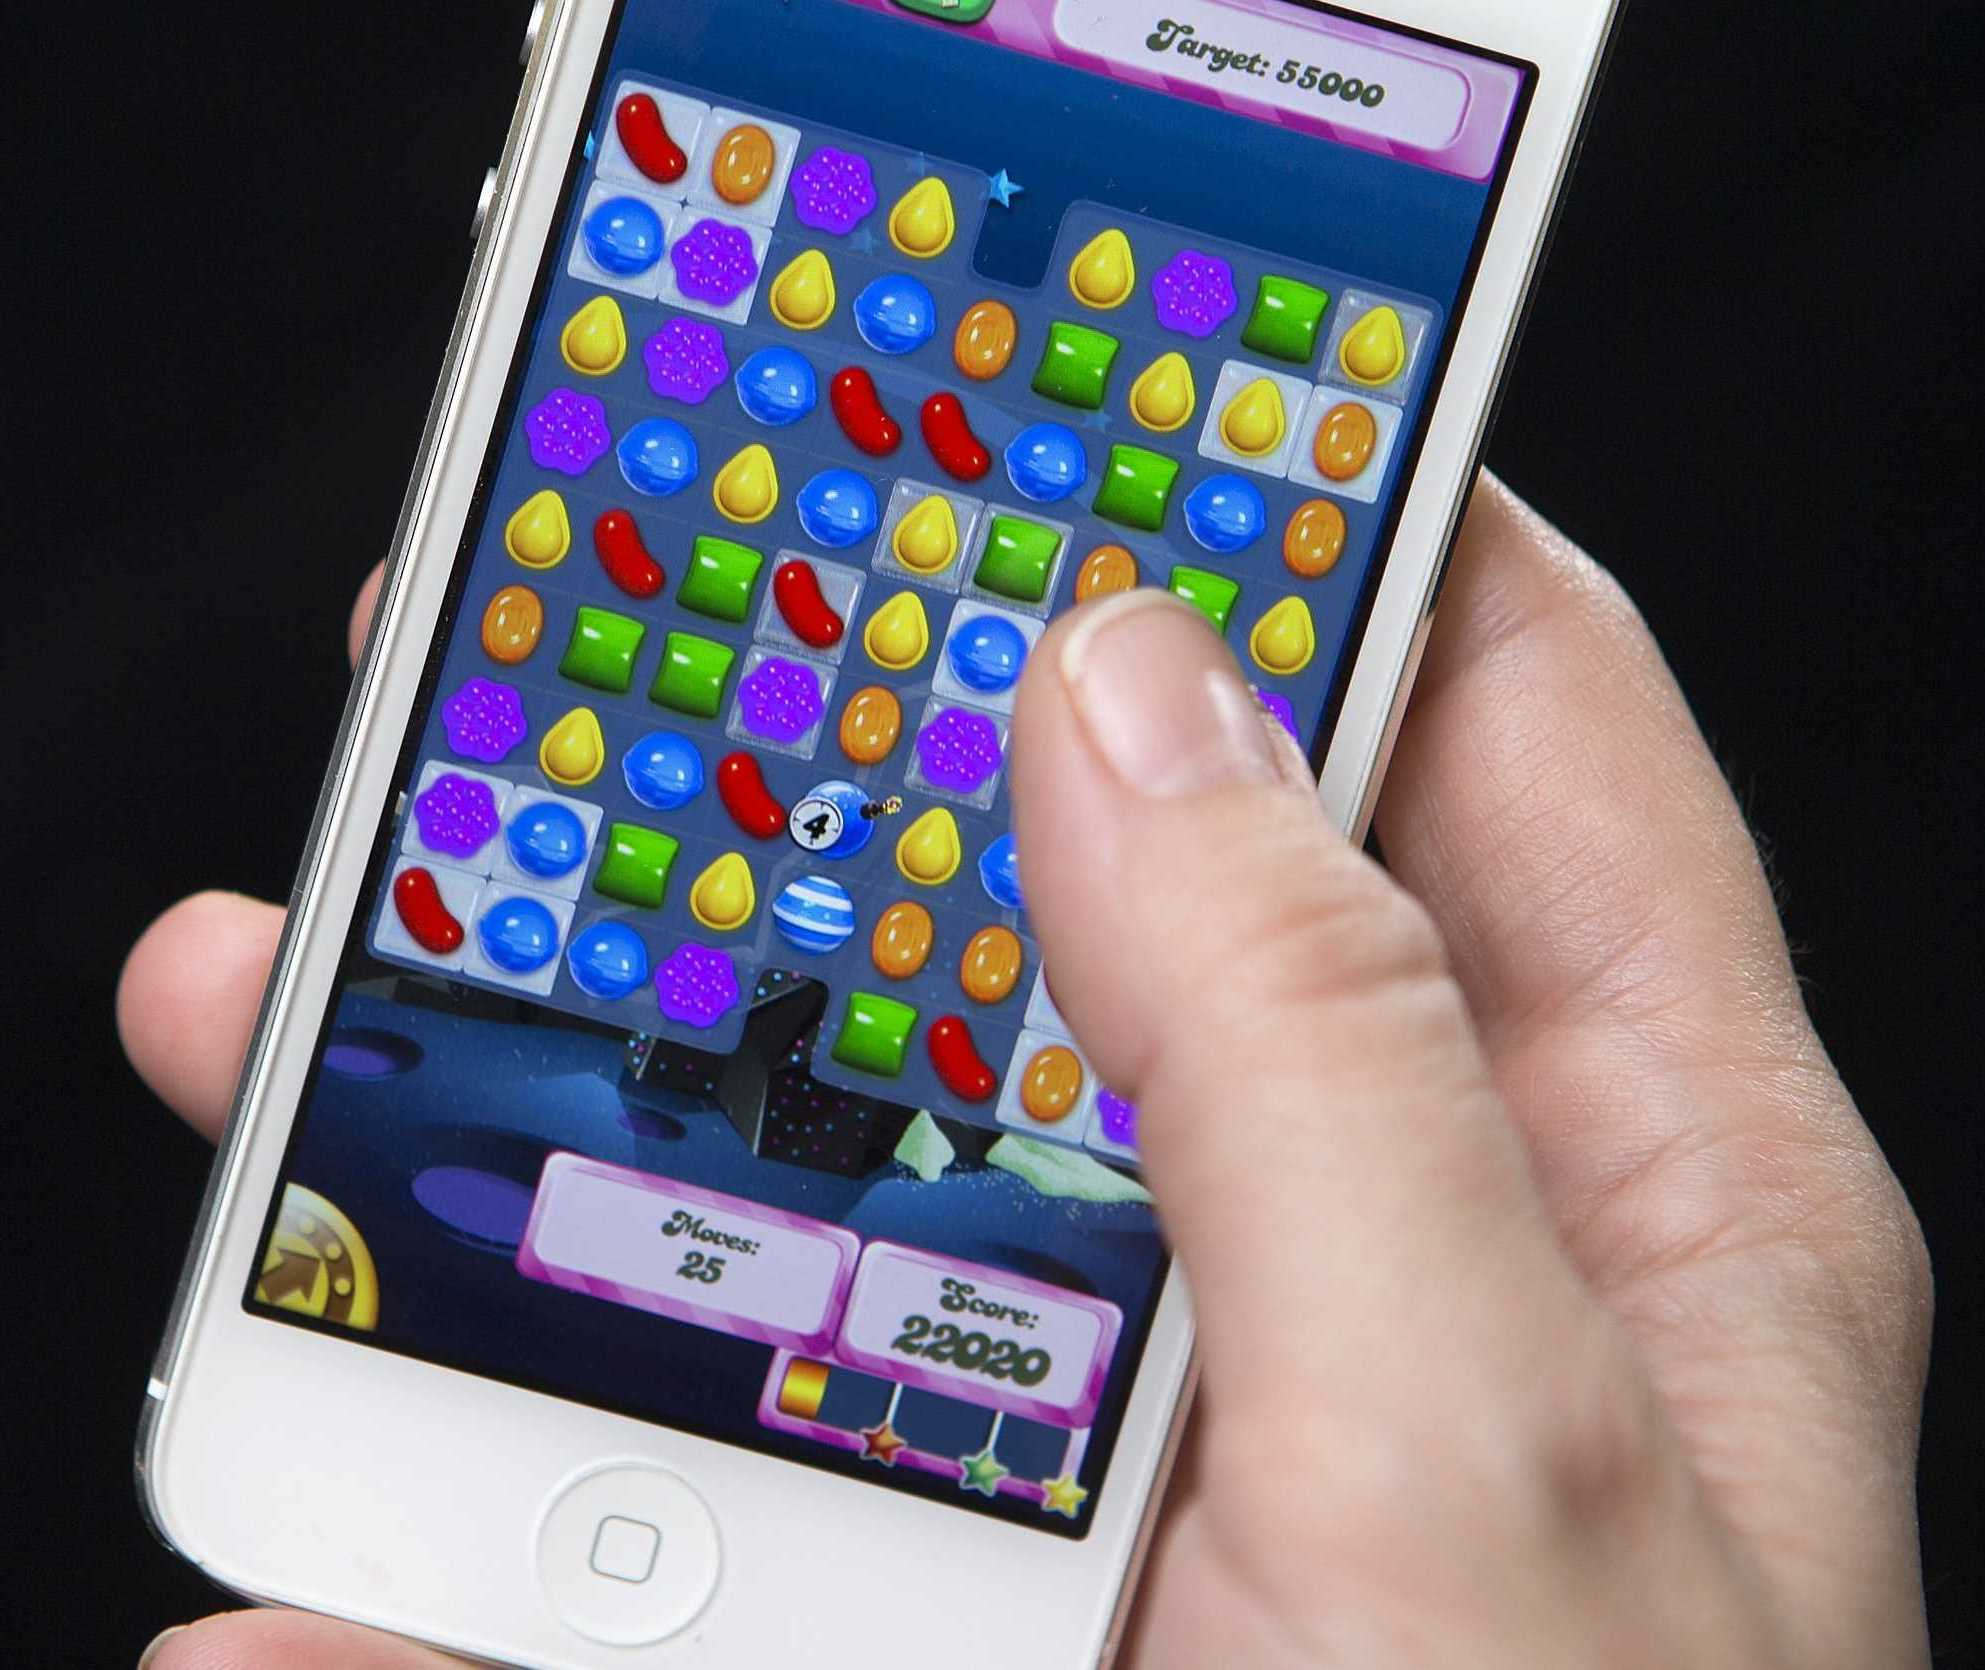 a-british-mp-admitted-to-playing-candy-crush-for-hours-during-a-pensions-meeting.jpg